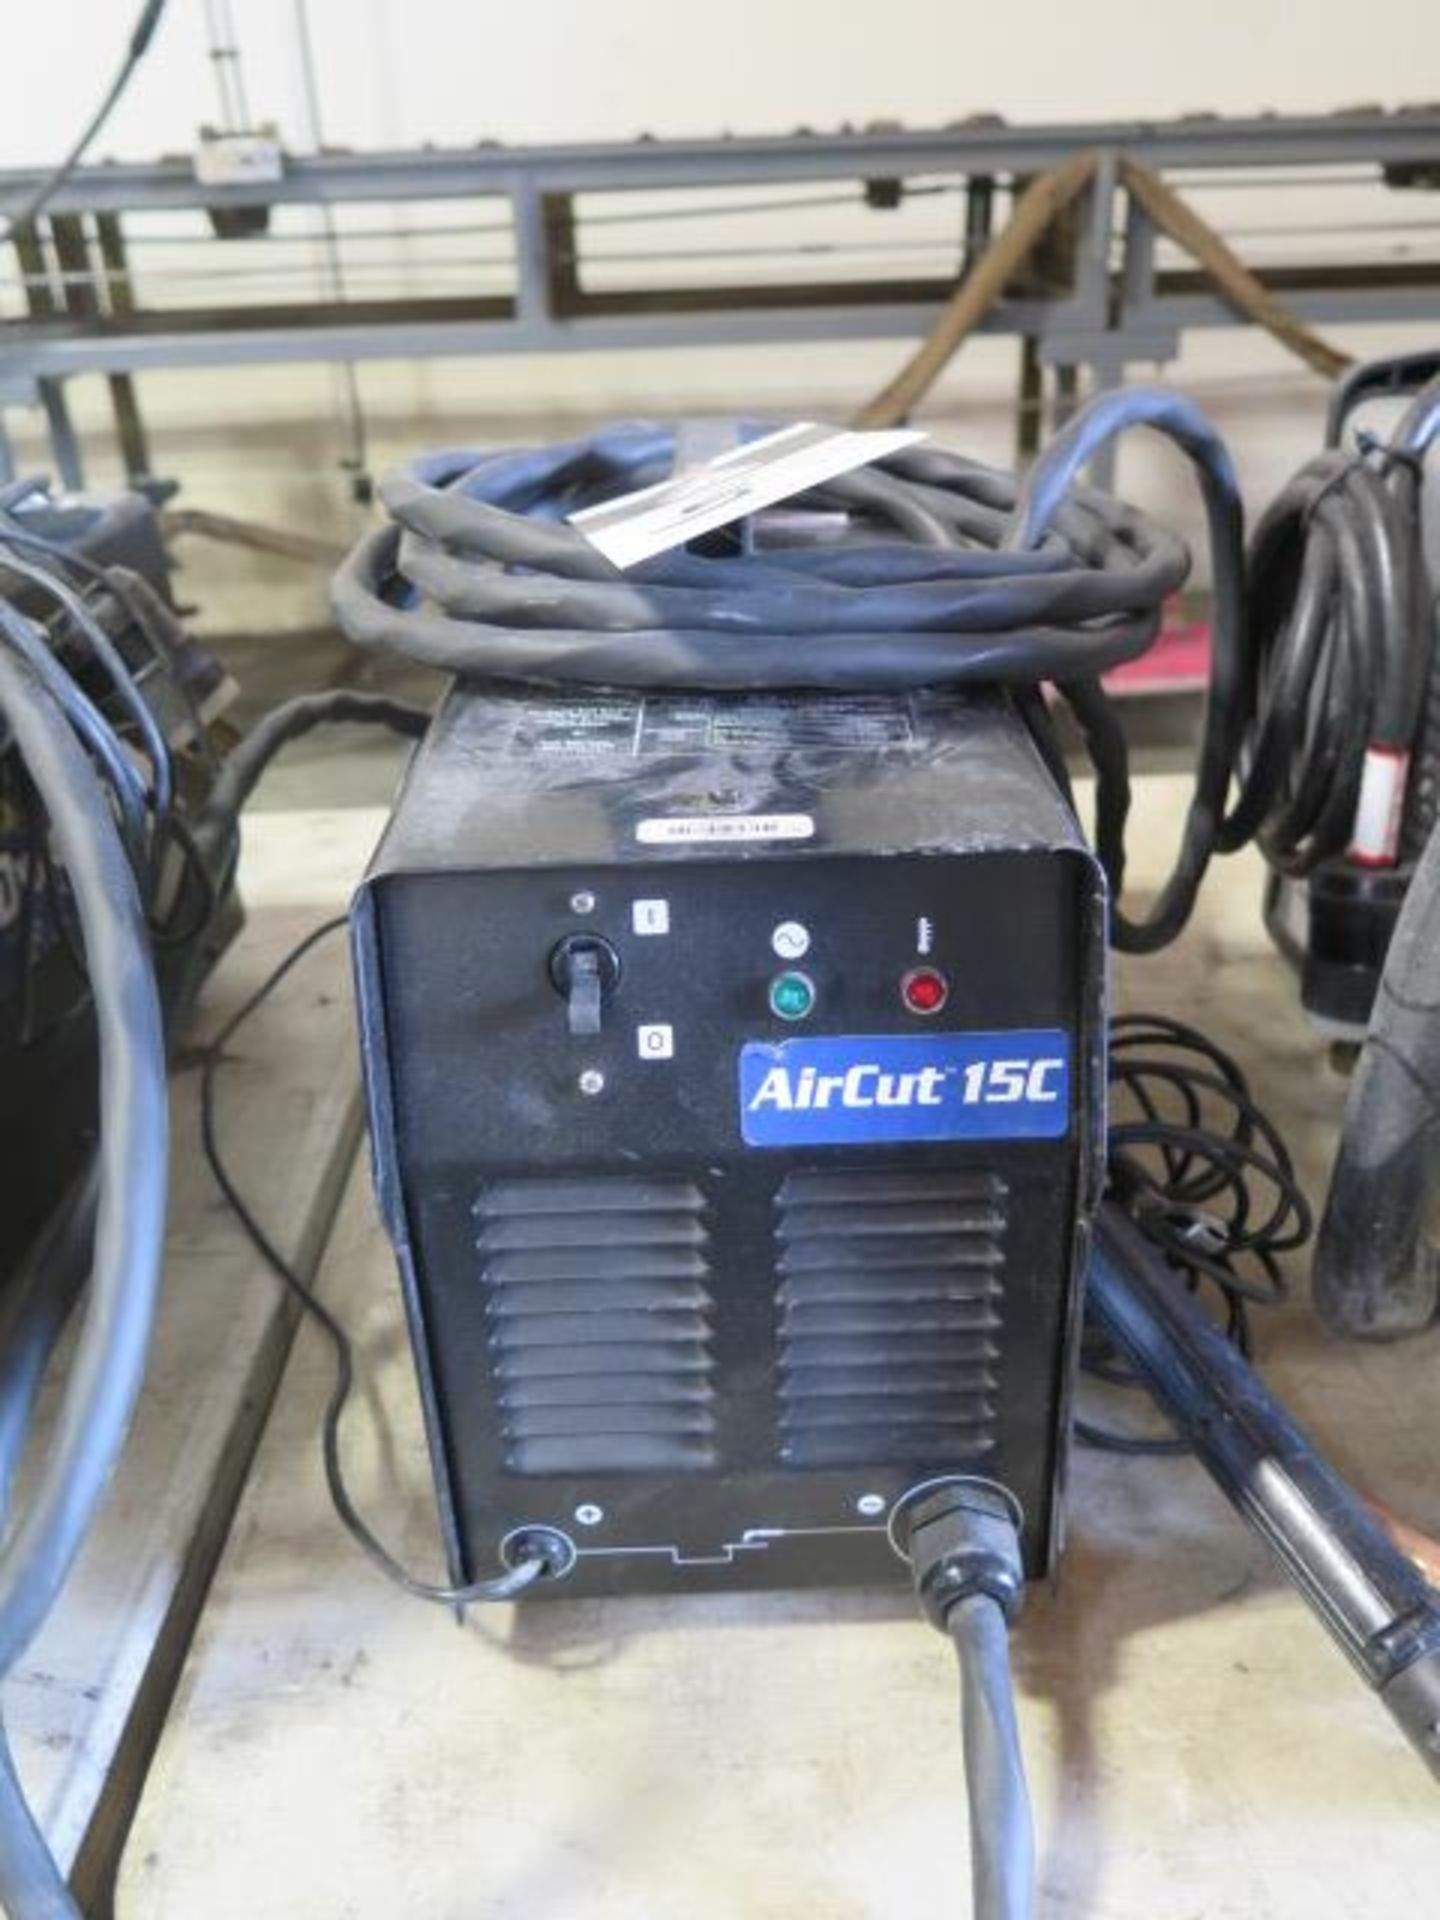 Thermal Dynamics AirCut 15 Plasma Cutting Power Source (SOLD AS-IS - NO WARRANTY) - Image 2 of 5